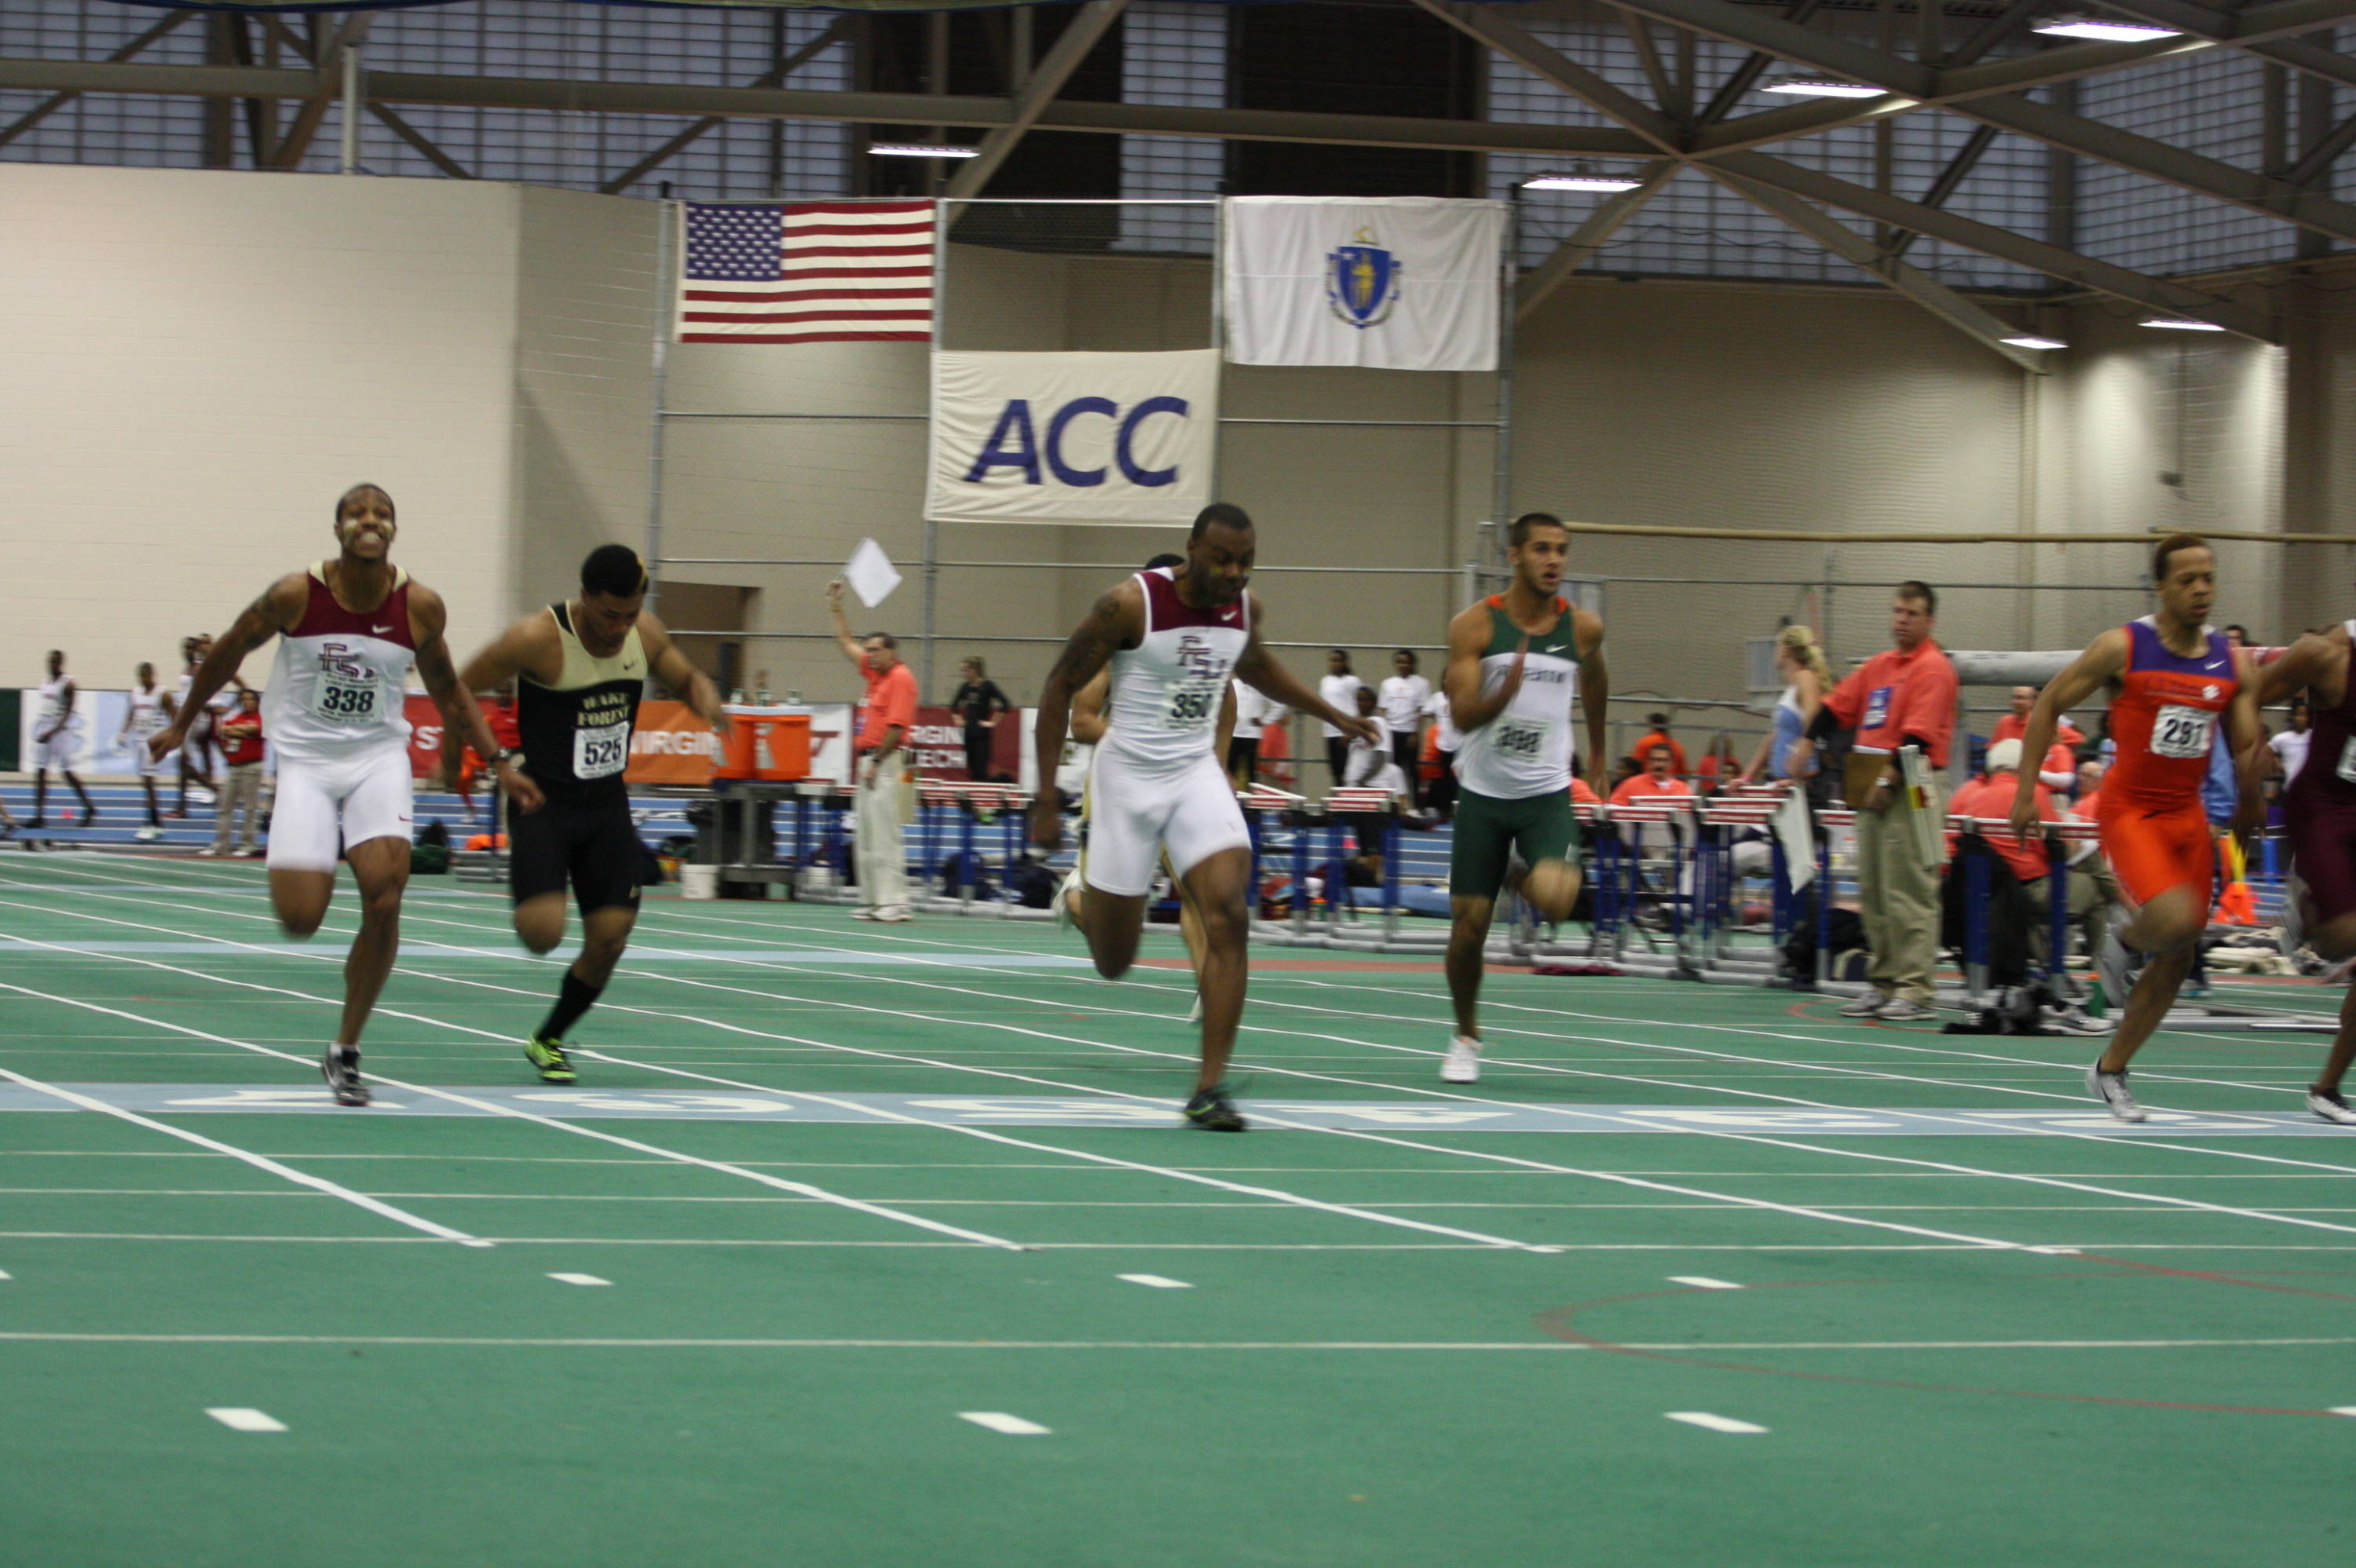 Maurice Mitchell (near left) and Horatio Williams (center) qualified for the finals of the 60-meter dash, despite misjudging the finish line in Friday's preliminary round.